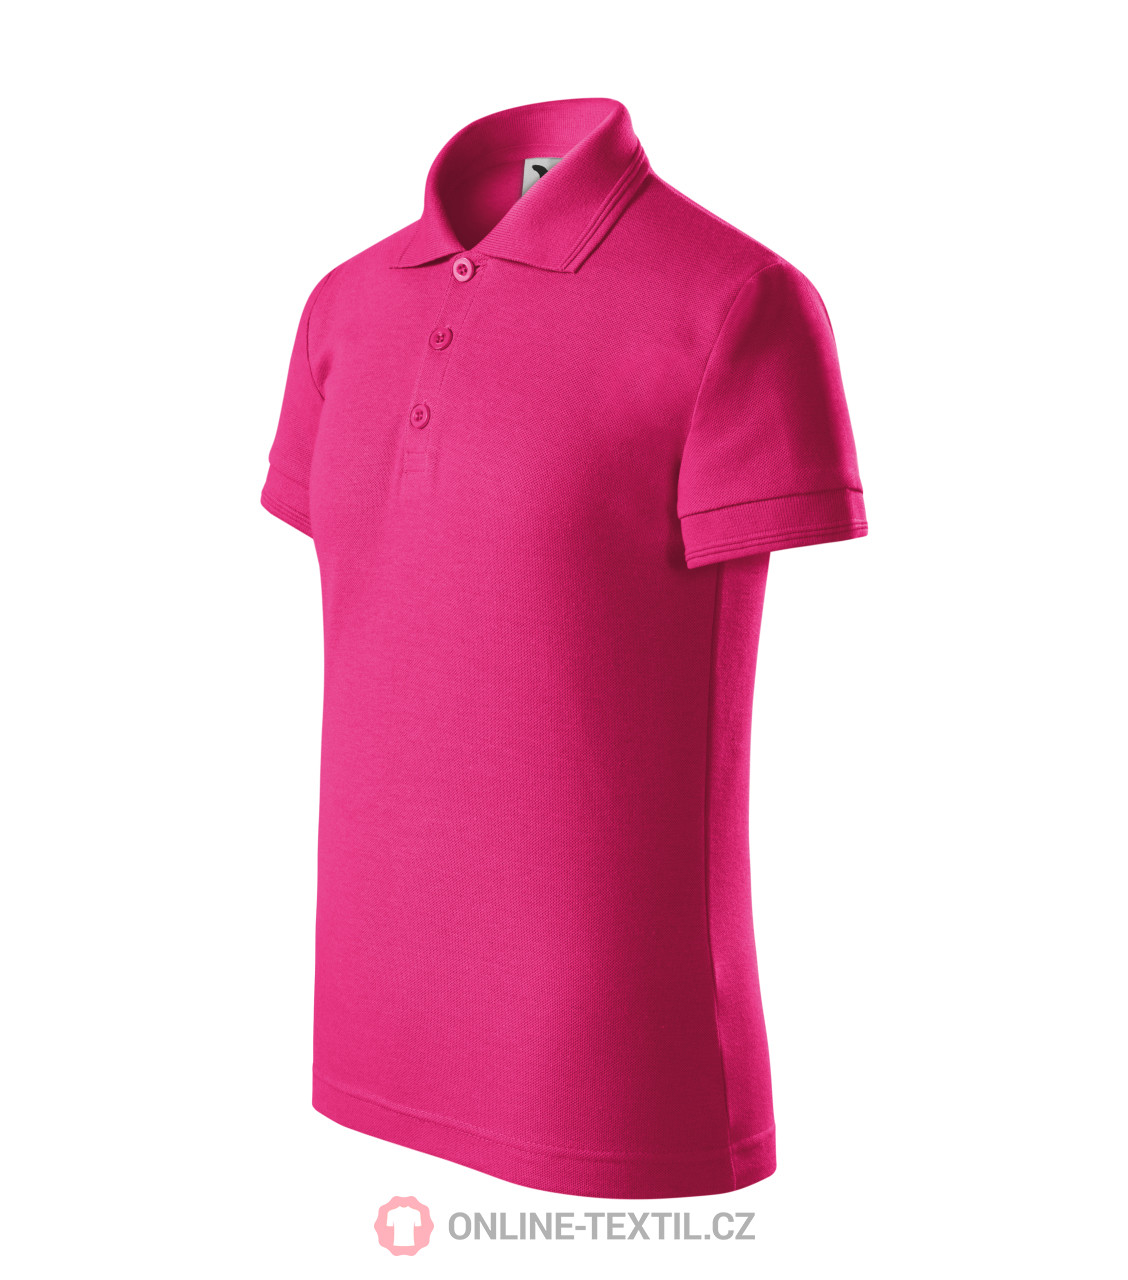 8316cb1be1d5 ADLER CZECH Heavyweight kids polo shirt Pique Polo 222 - magenta ...